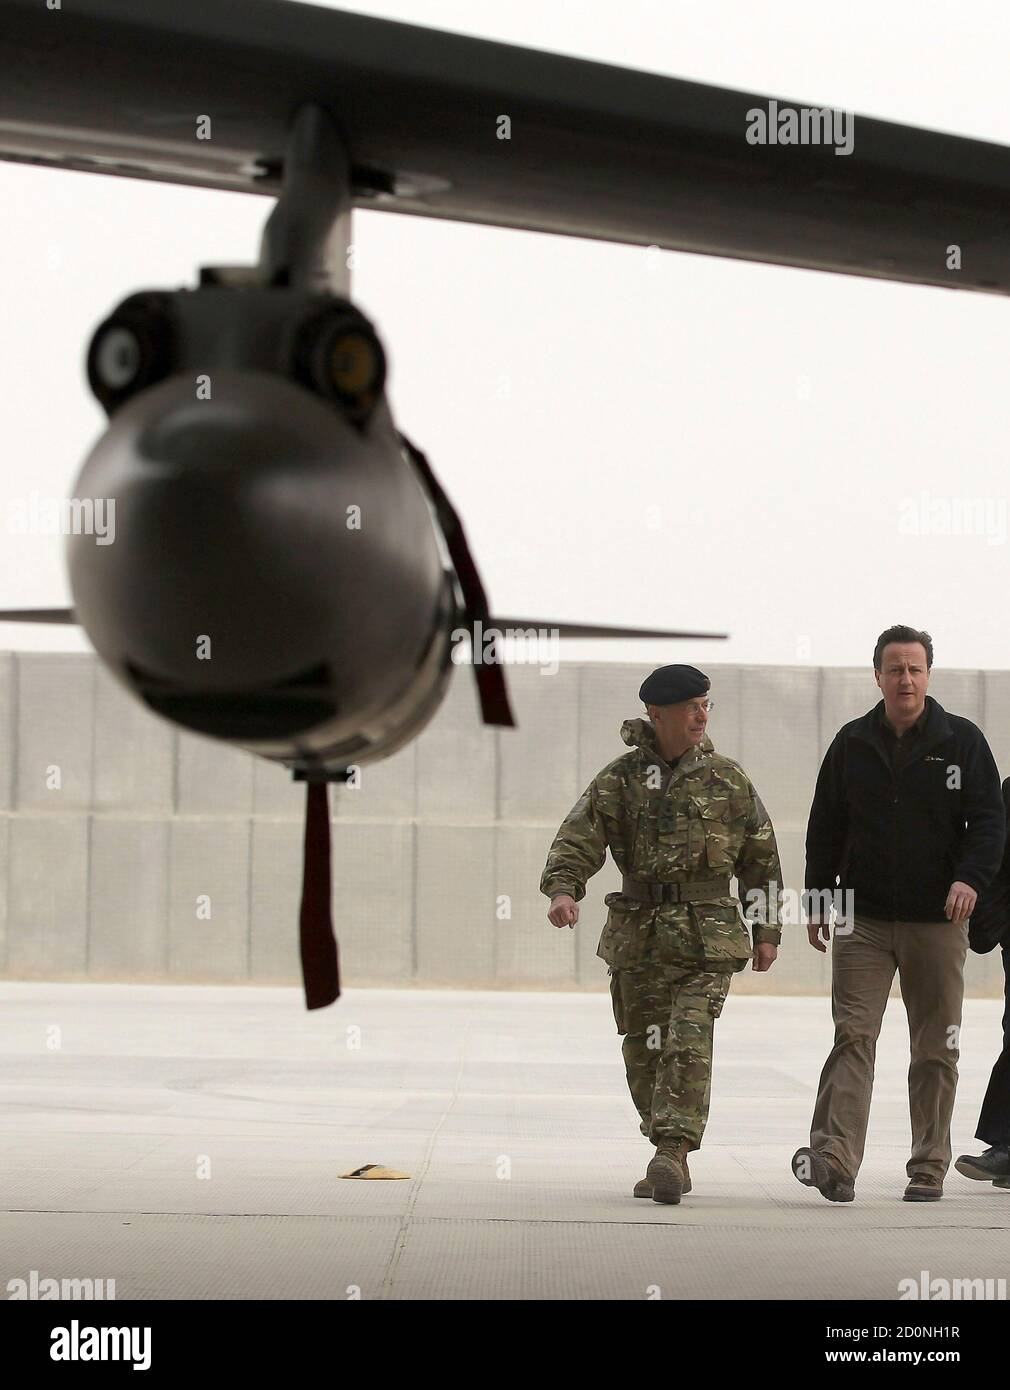 Britain's Prime Minister David Cameron views a Tornado fighter jet based with 12 (B) squadron at Kandahar airfield during a visit to meet British forces in Afghanistan December 20, 2011.   REUTERS/Jeff J Mitchell/Pool      (AFGHANISTAN - Tags: MILITARY POLITICS CONFLICT) Stock Photo